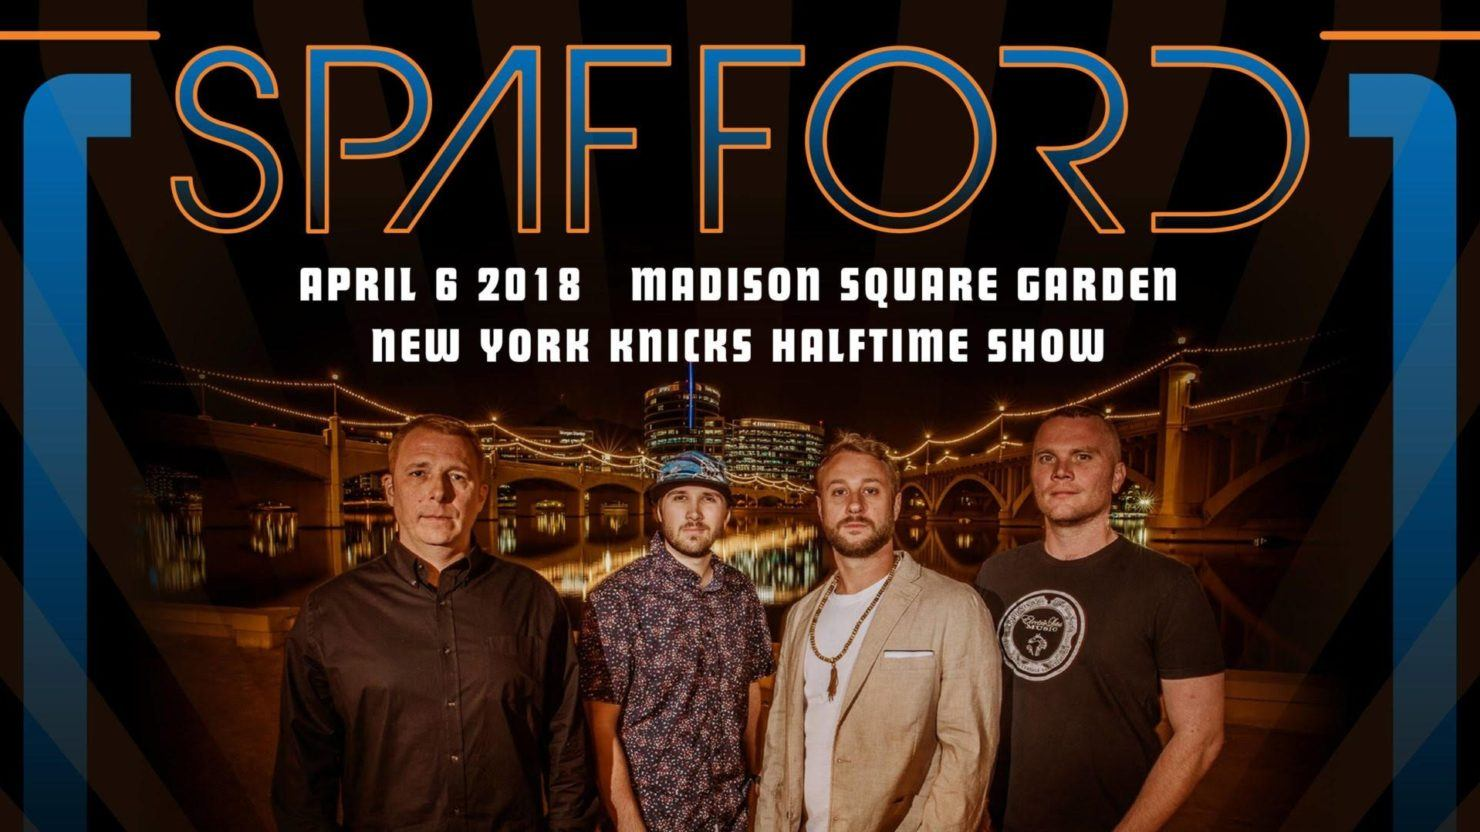 Spafford To Play Madison Square Garden For Knicks Halftime Performance